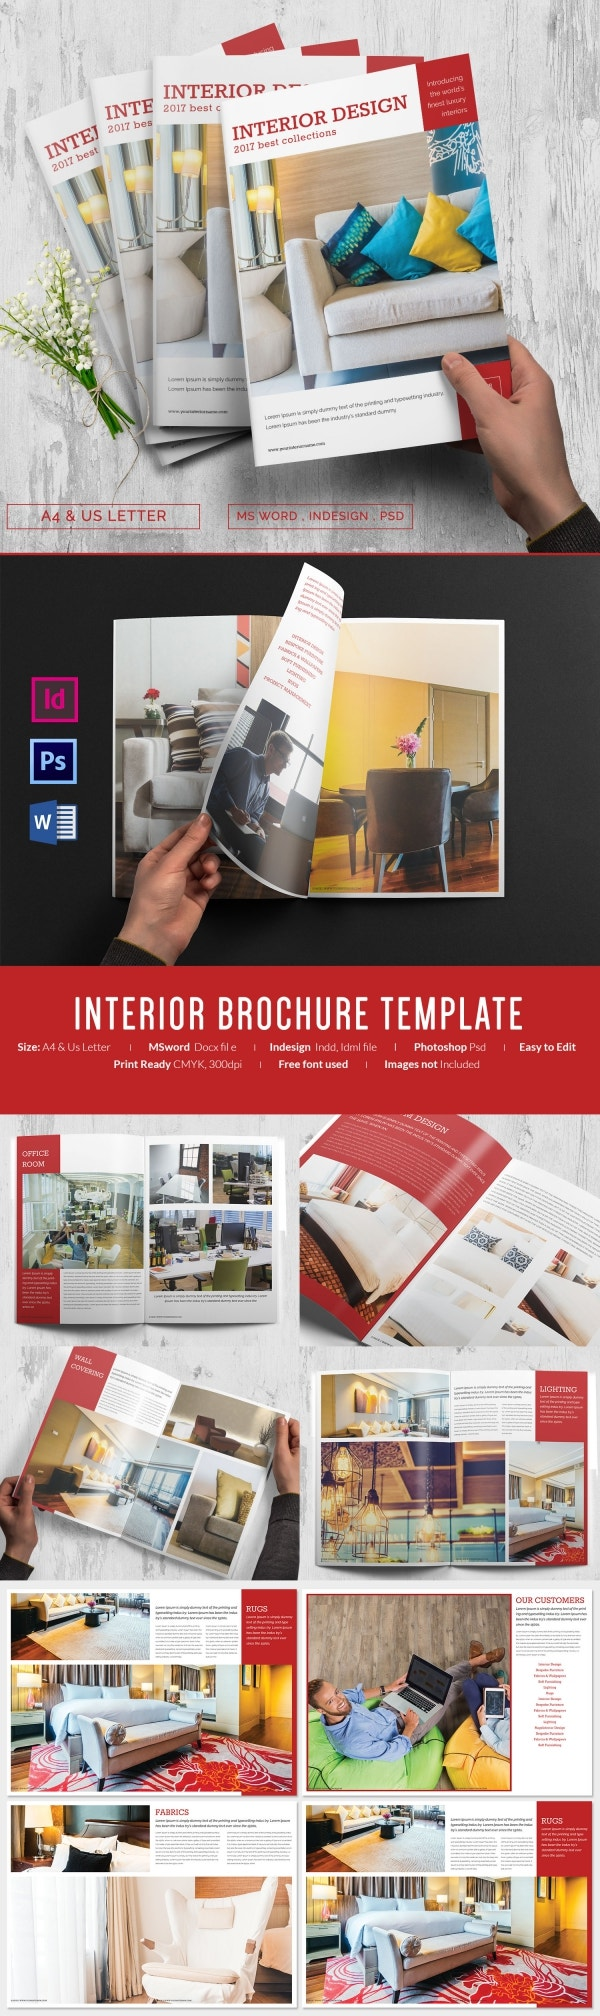 Printable Interior Brochure Template